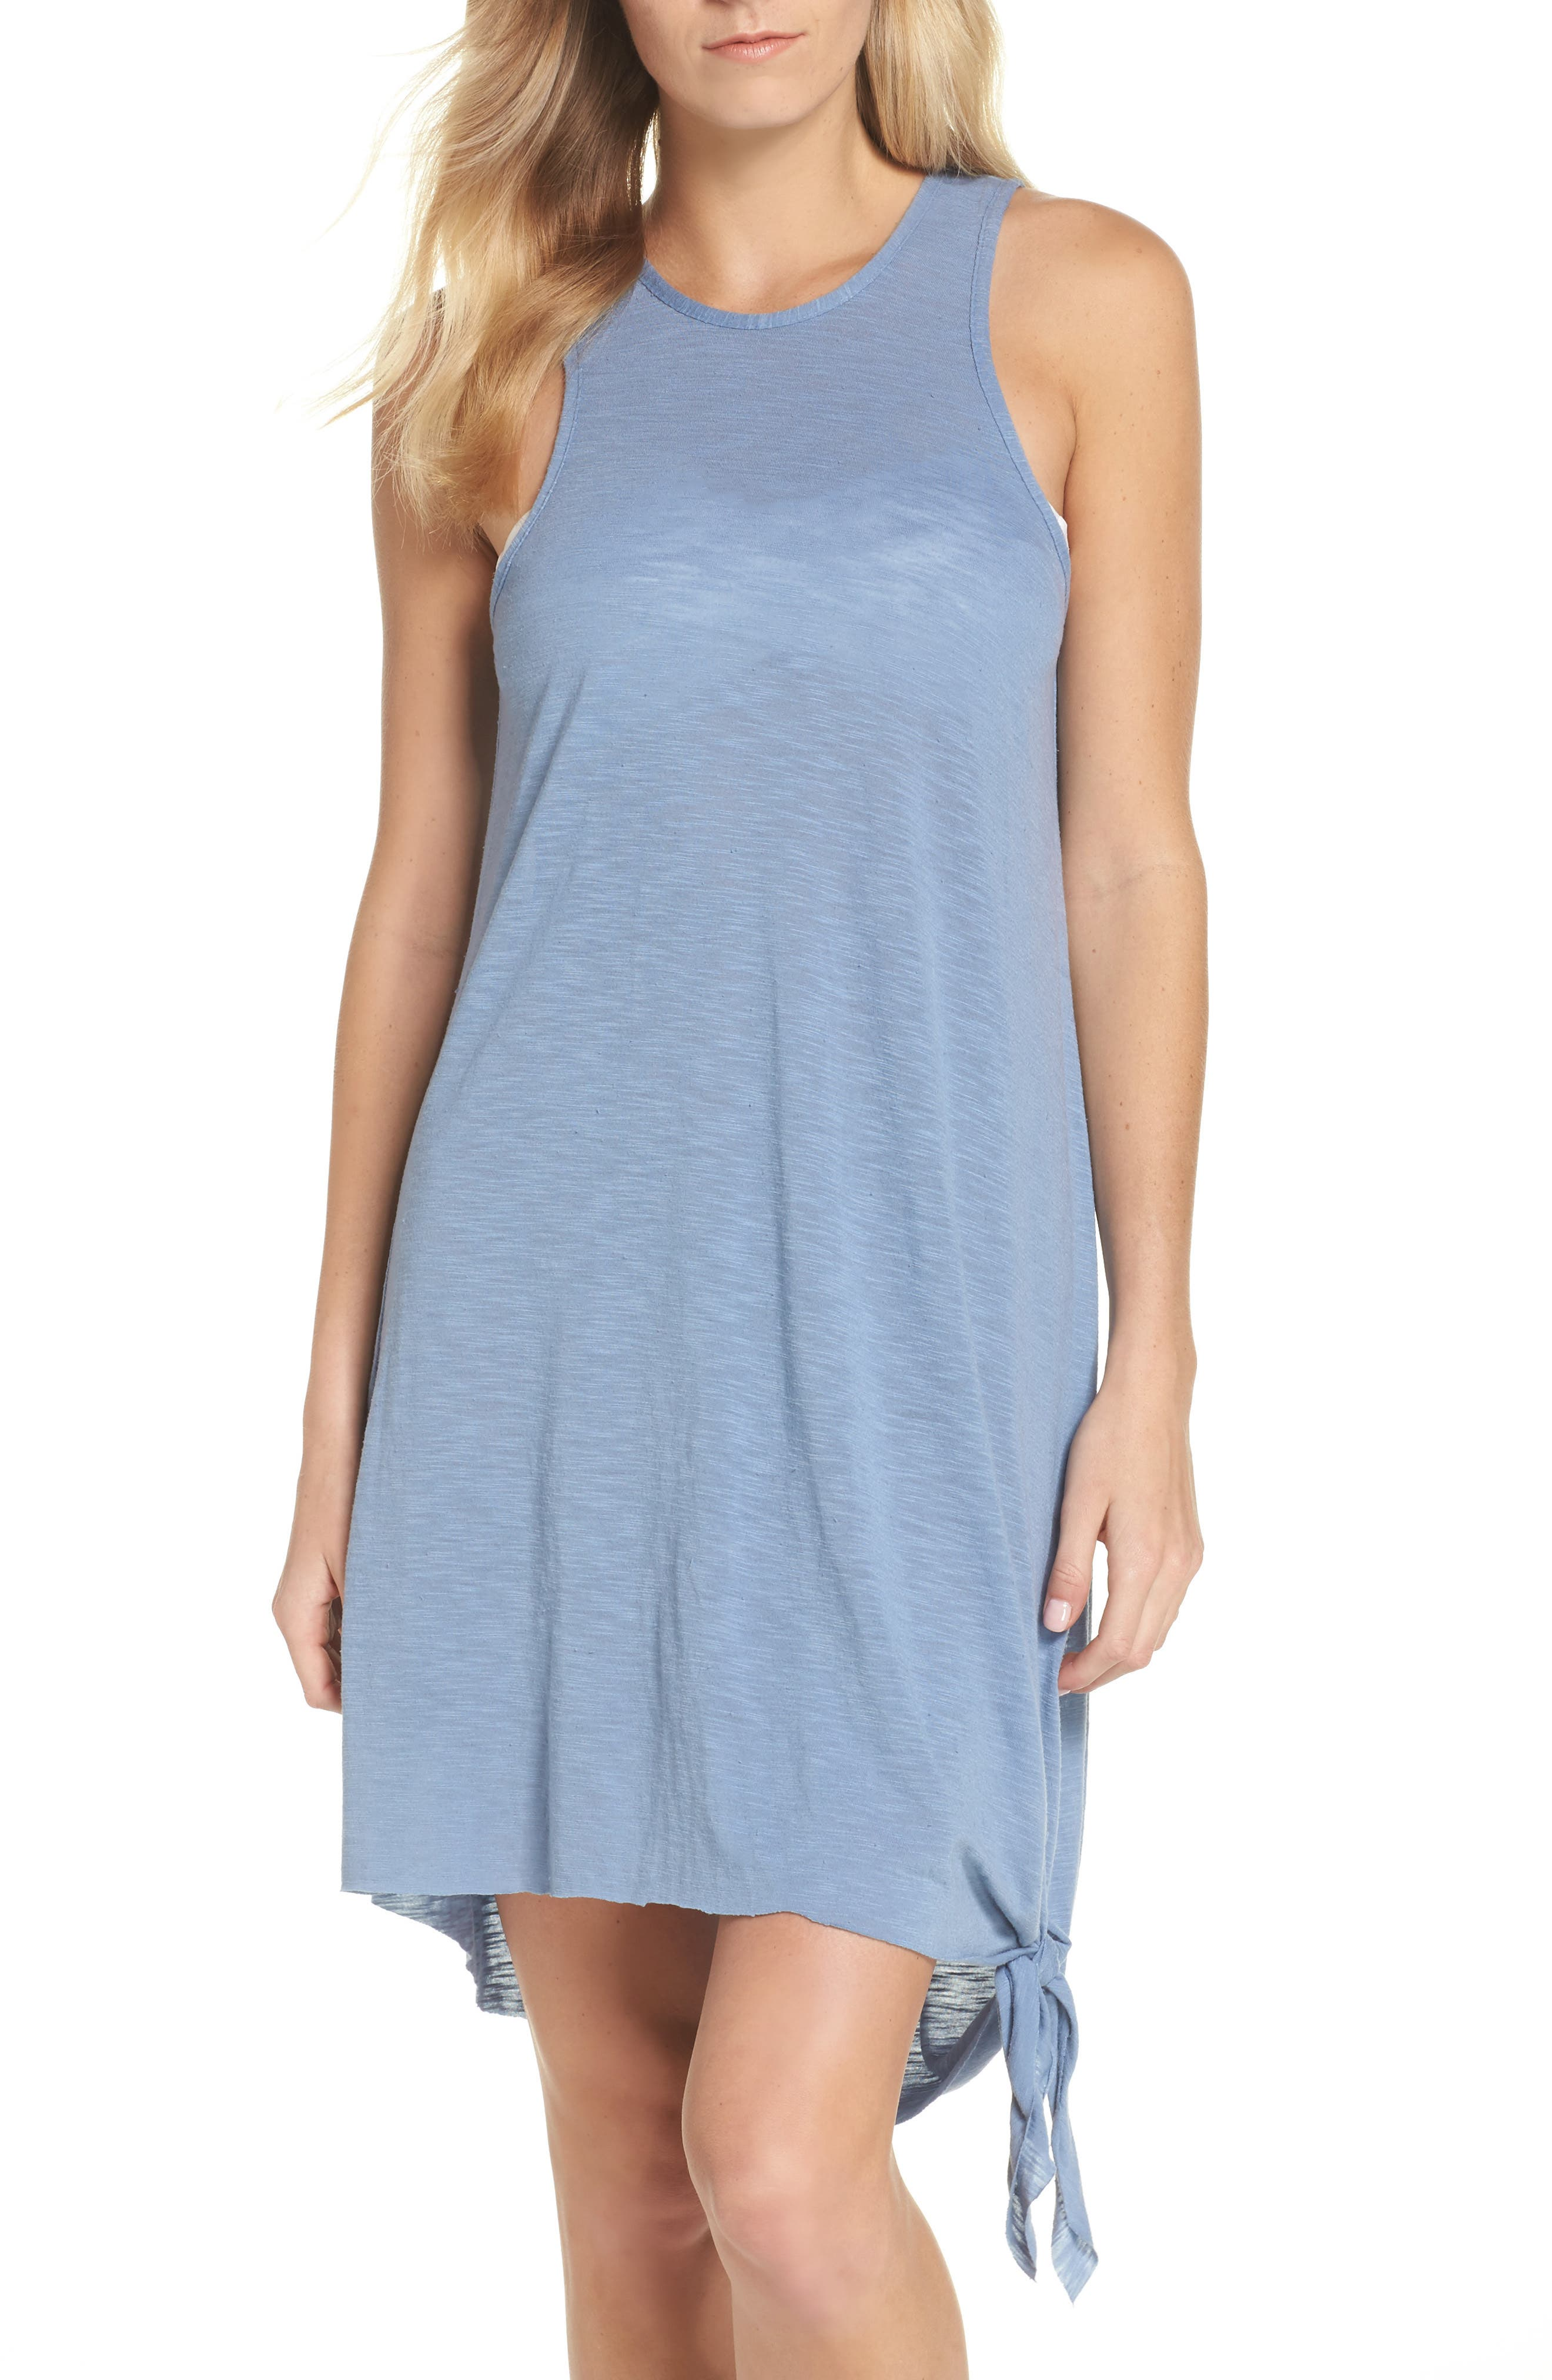 Becca Breezy Basics Cover-Up Dress, /XX-Large - Blue